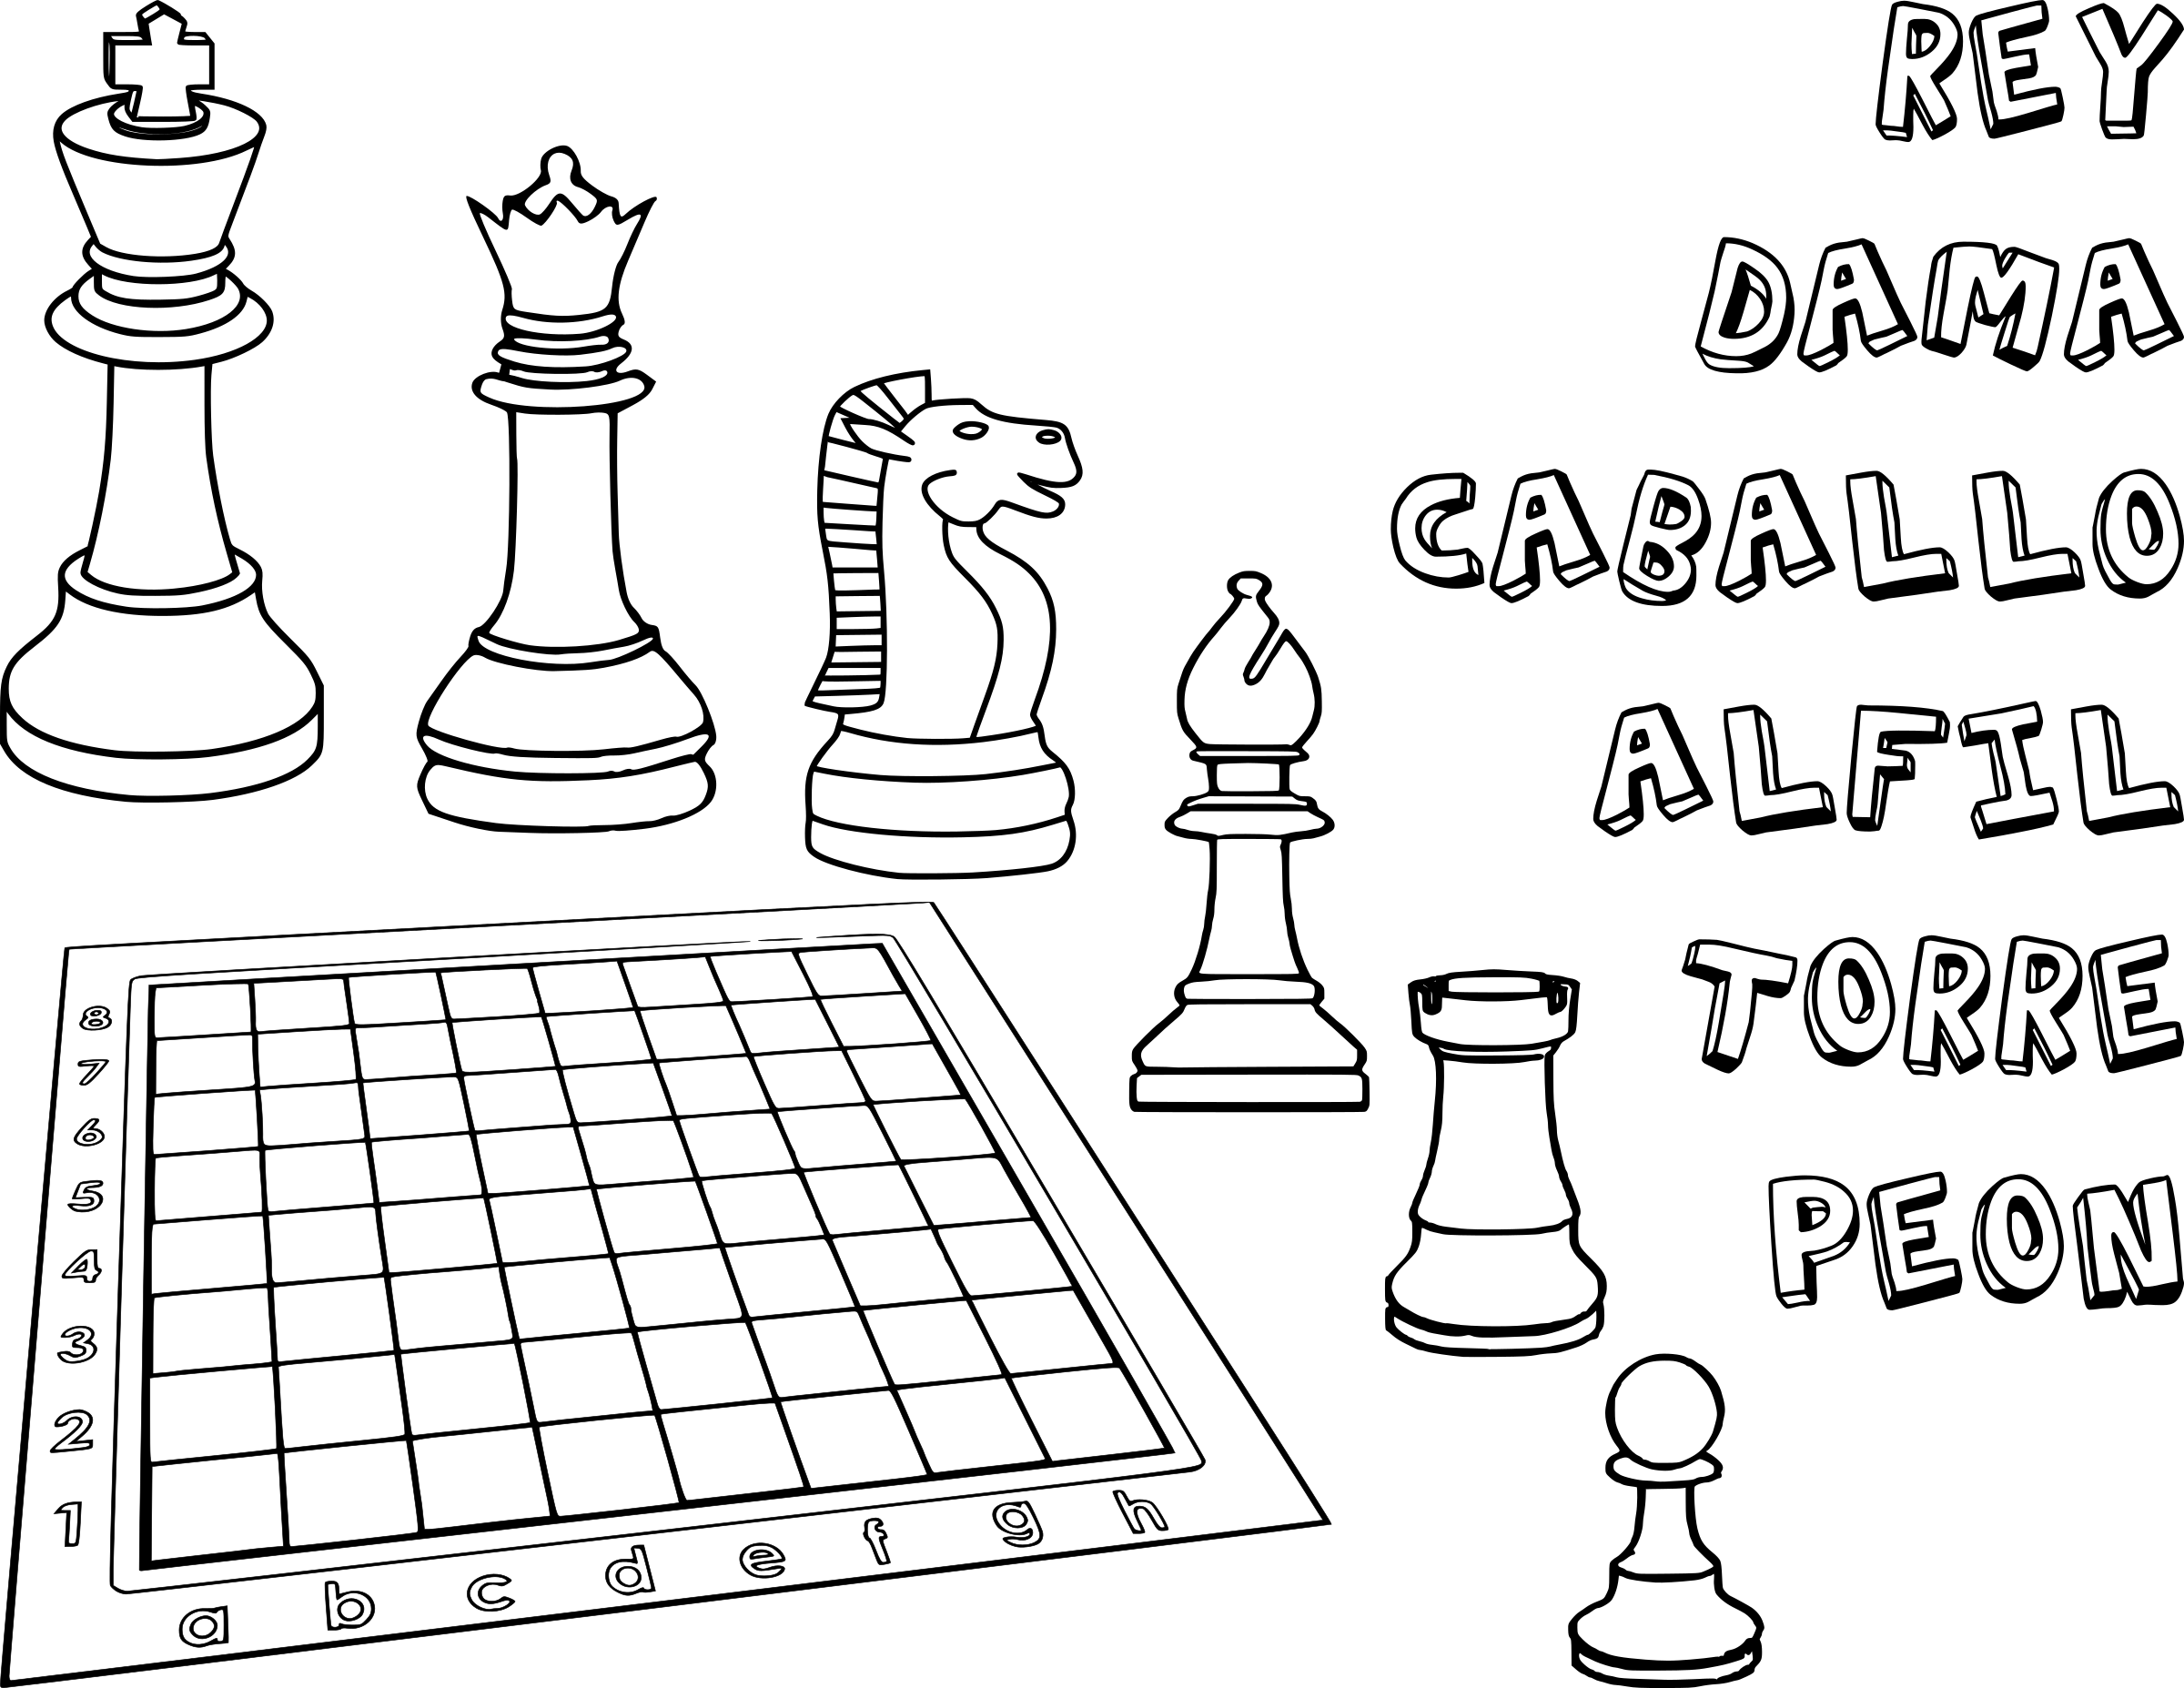 Chess Coloring Book  / Dibujo Ajedrez para colorear -1- by DG-RA